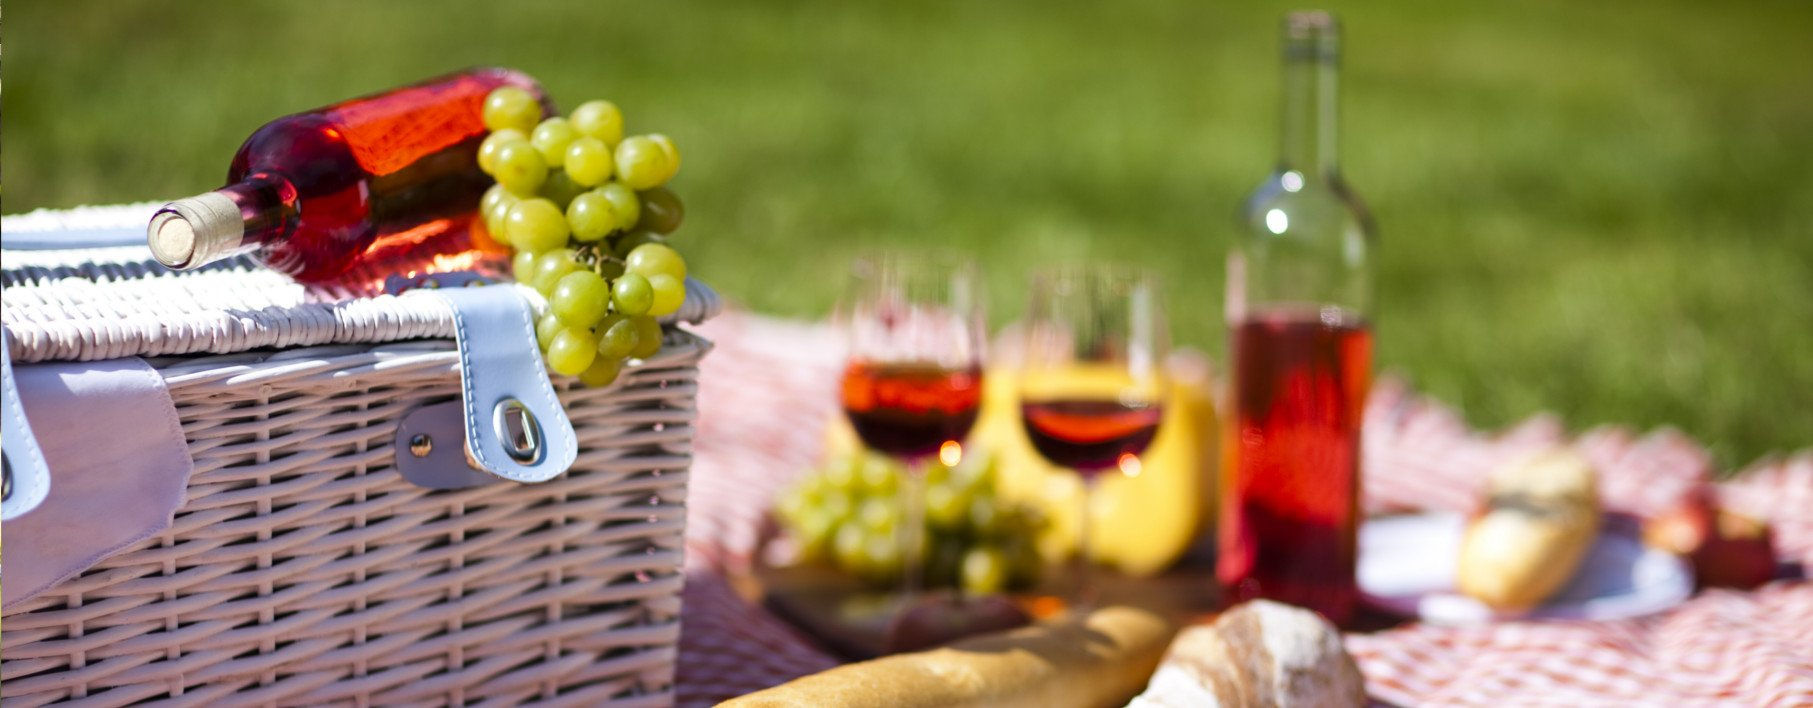 Dine Alfresco this Picnic Season